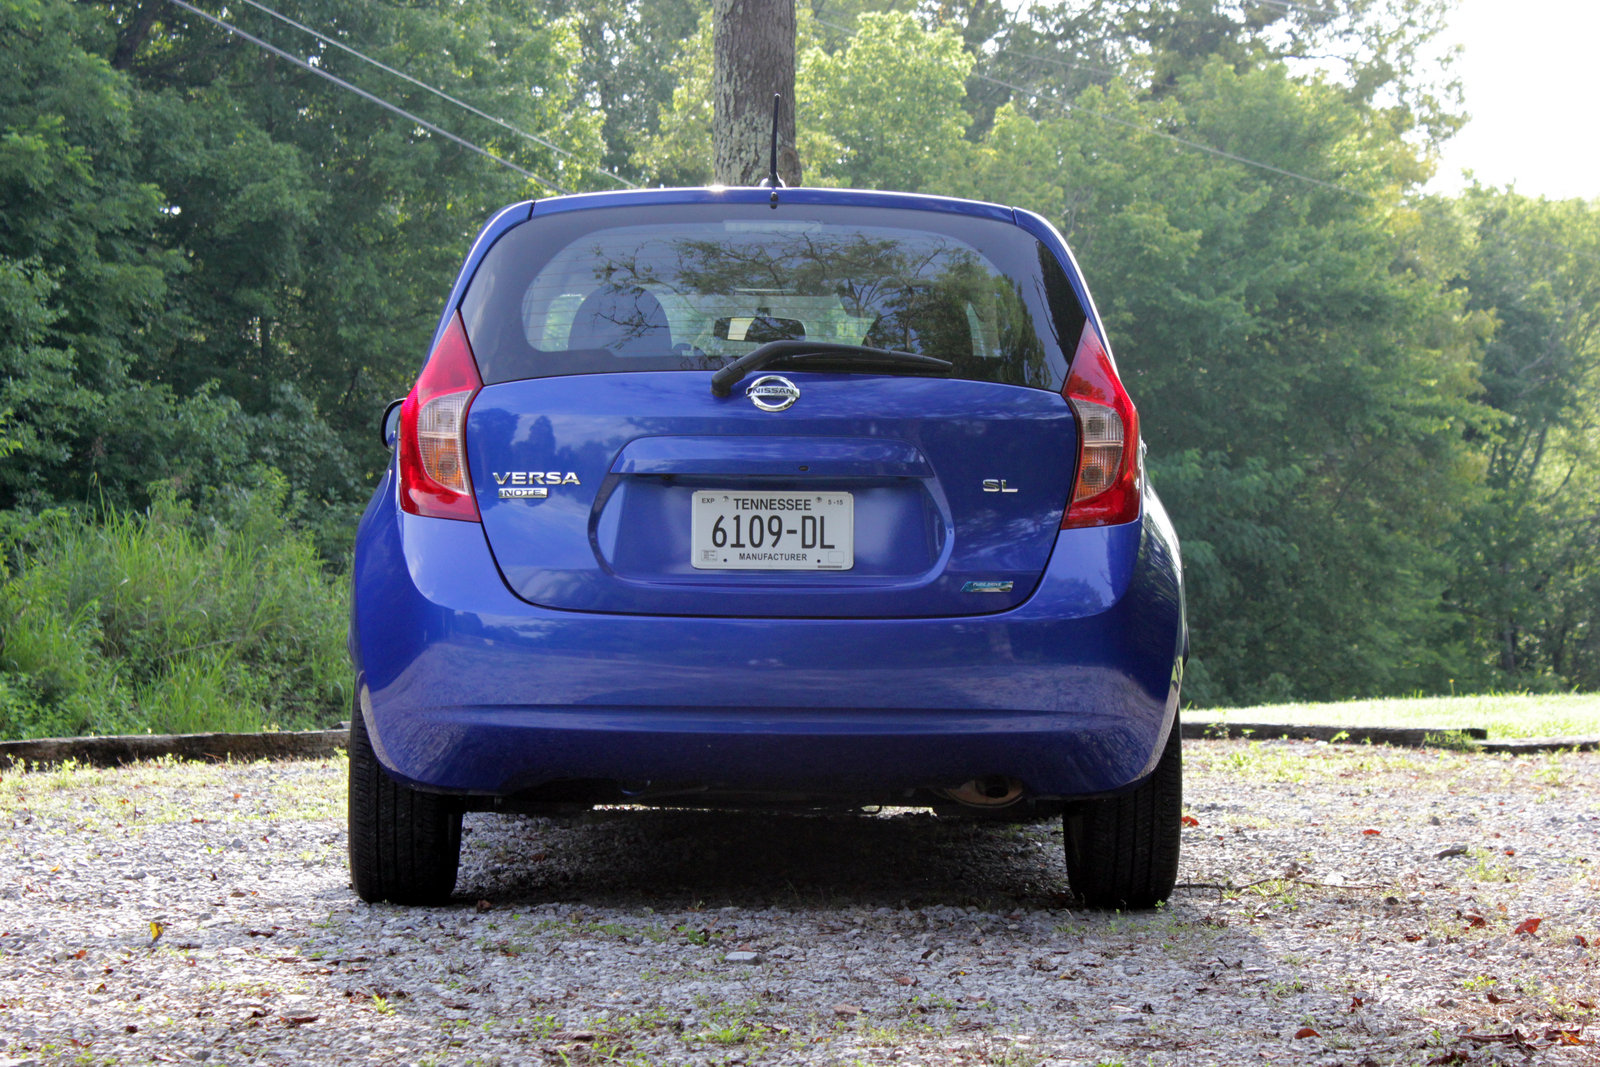 2014 nissan versa note review driven picture 561835 car review top speed. Black Bedroom Furniture Sets. Home Design Ideas